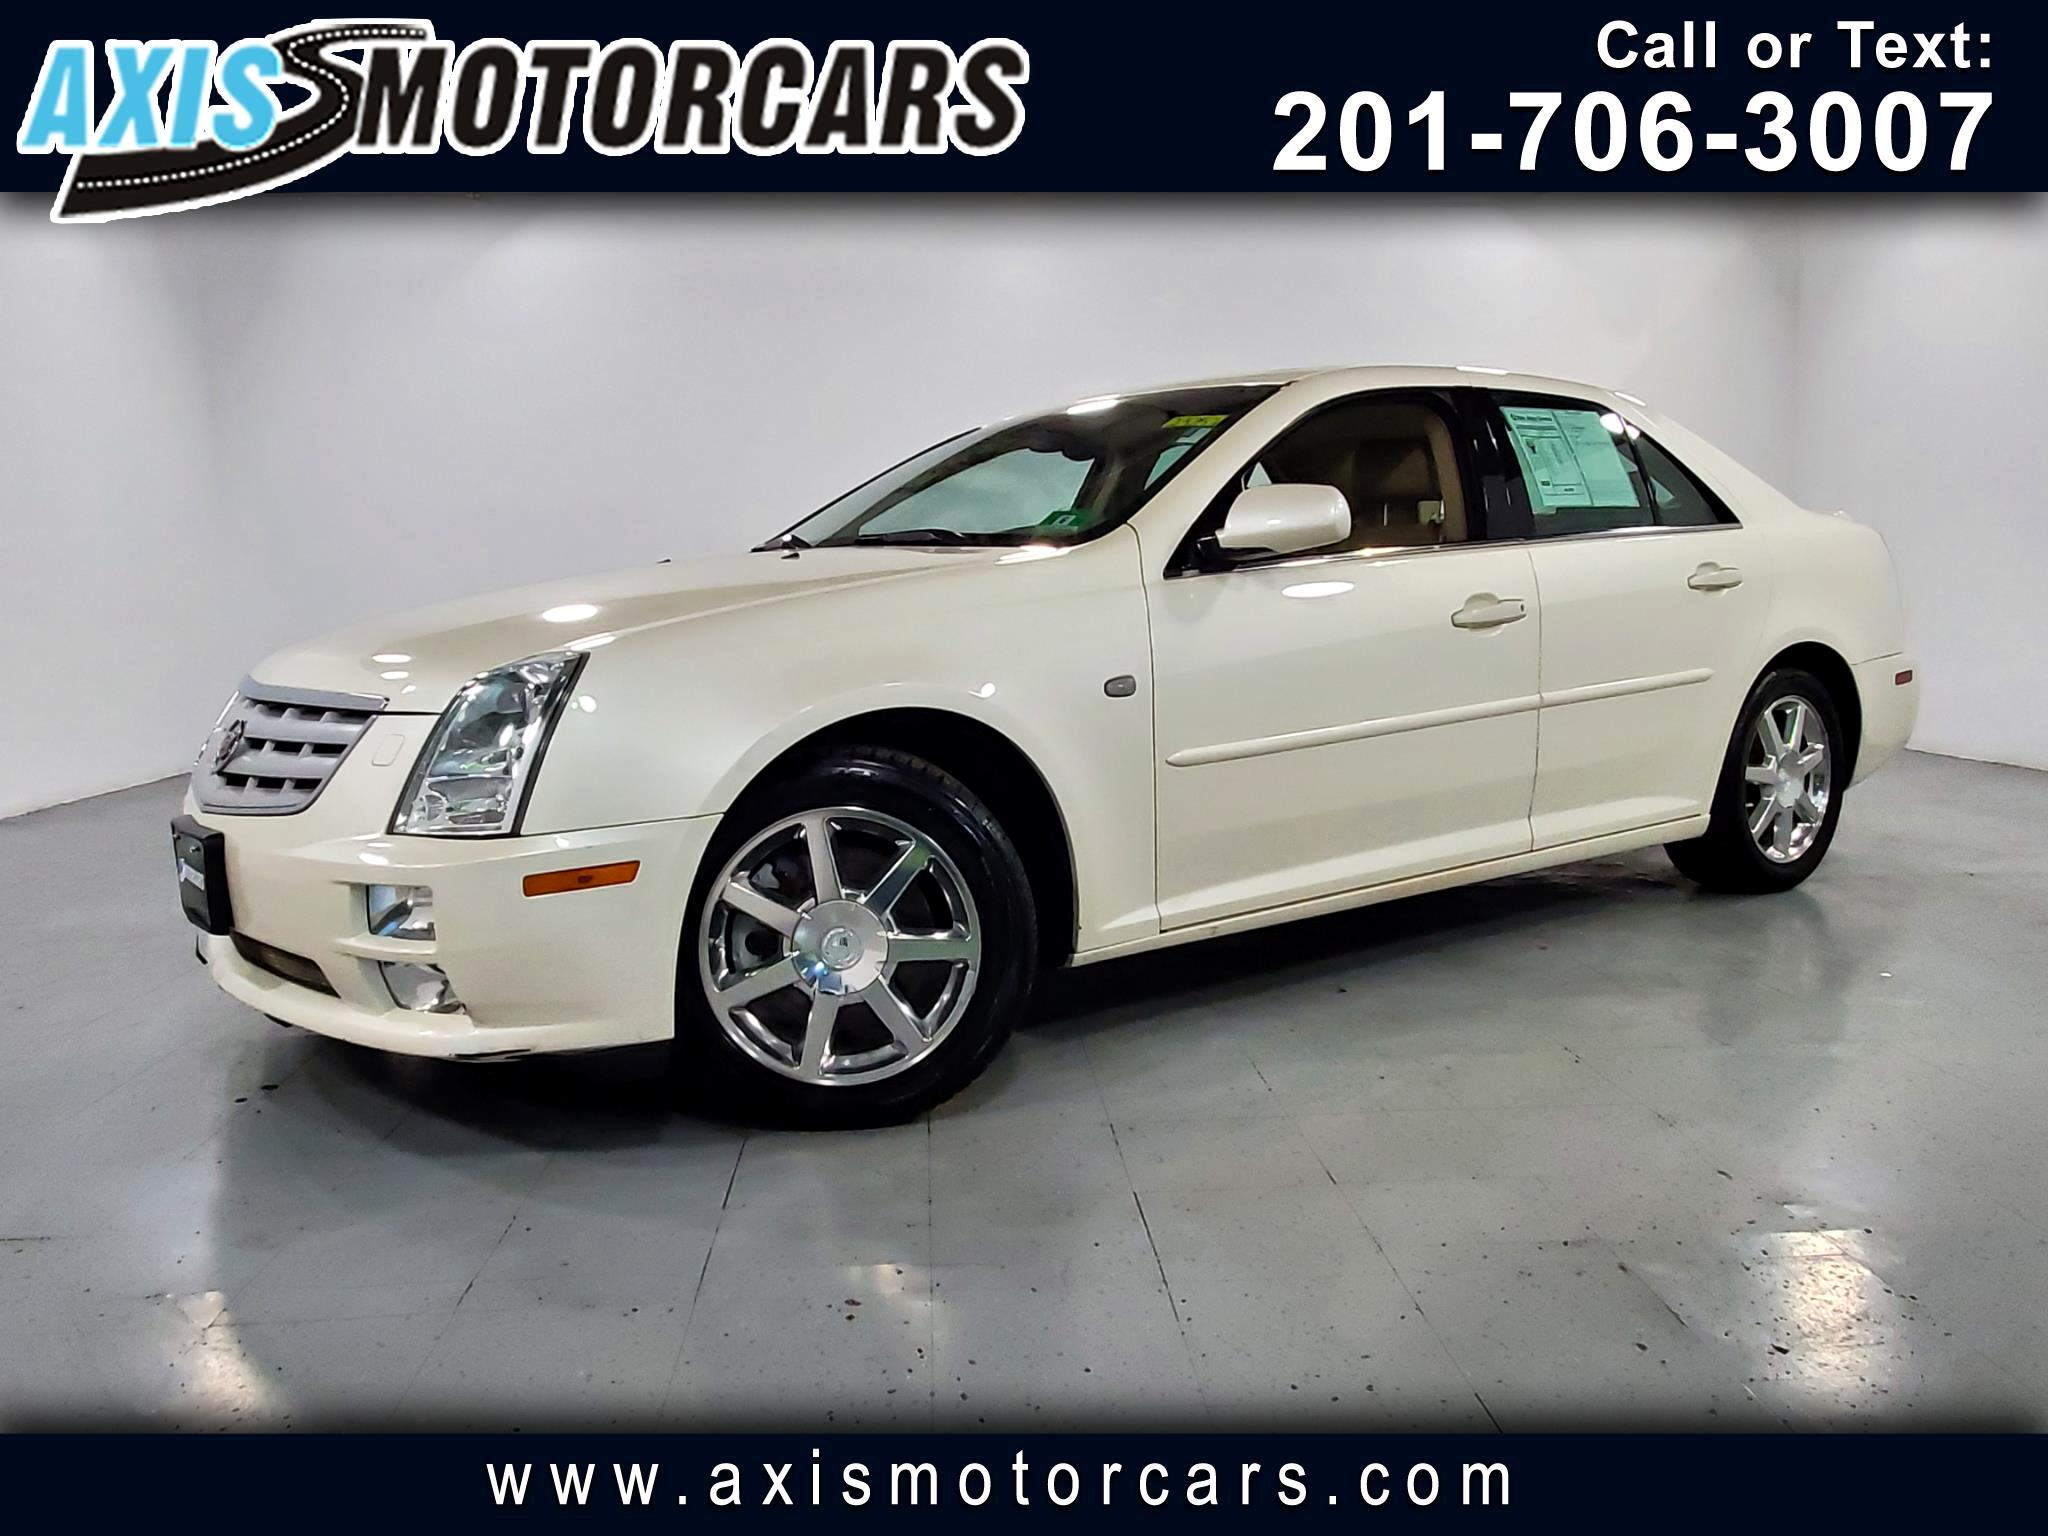 2005 Cadillac STS w/Bose Sound System Navigation Sunroof